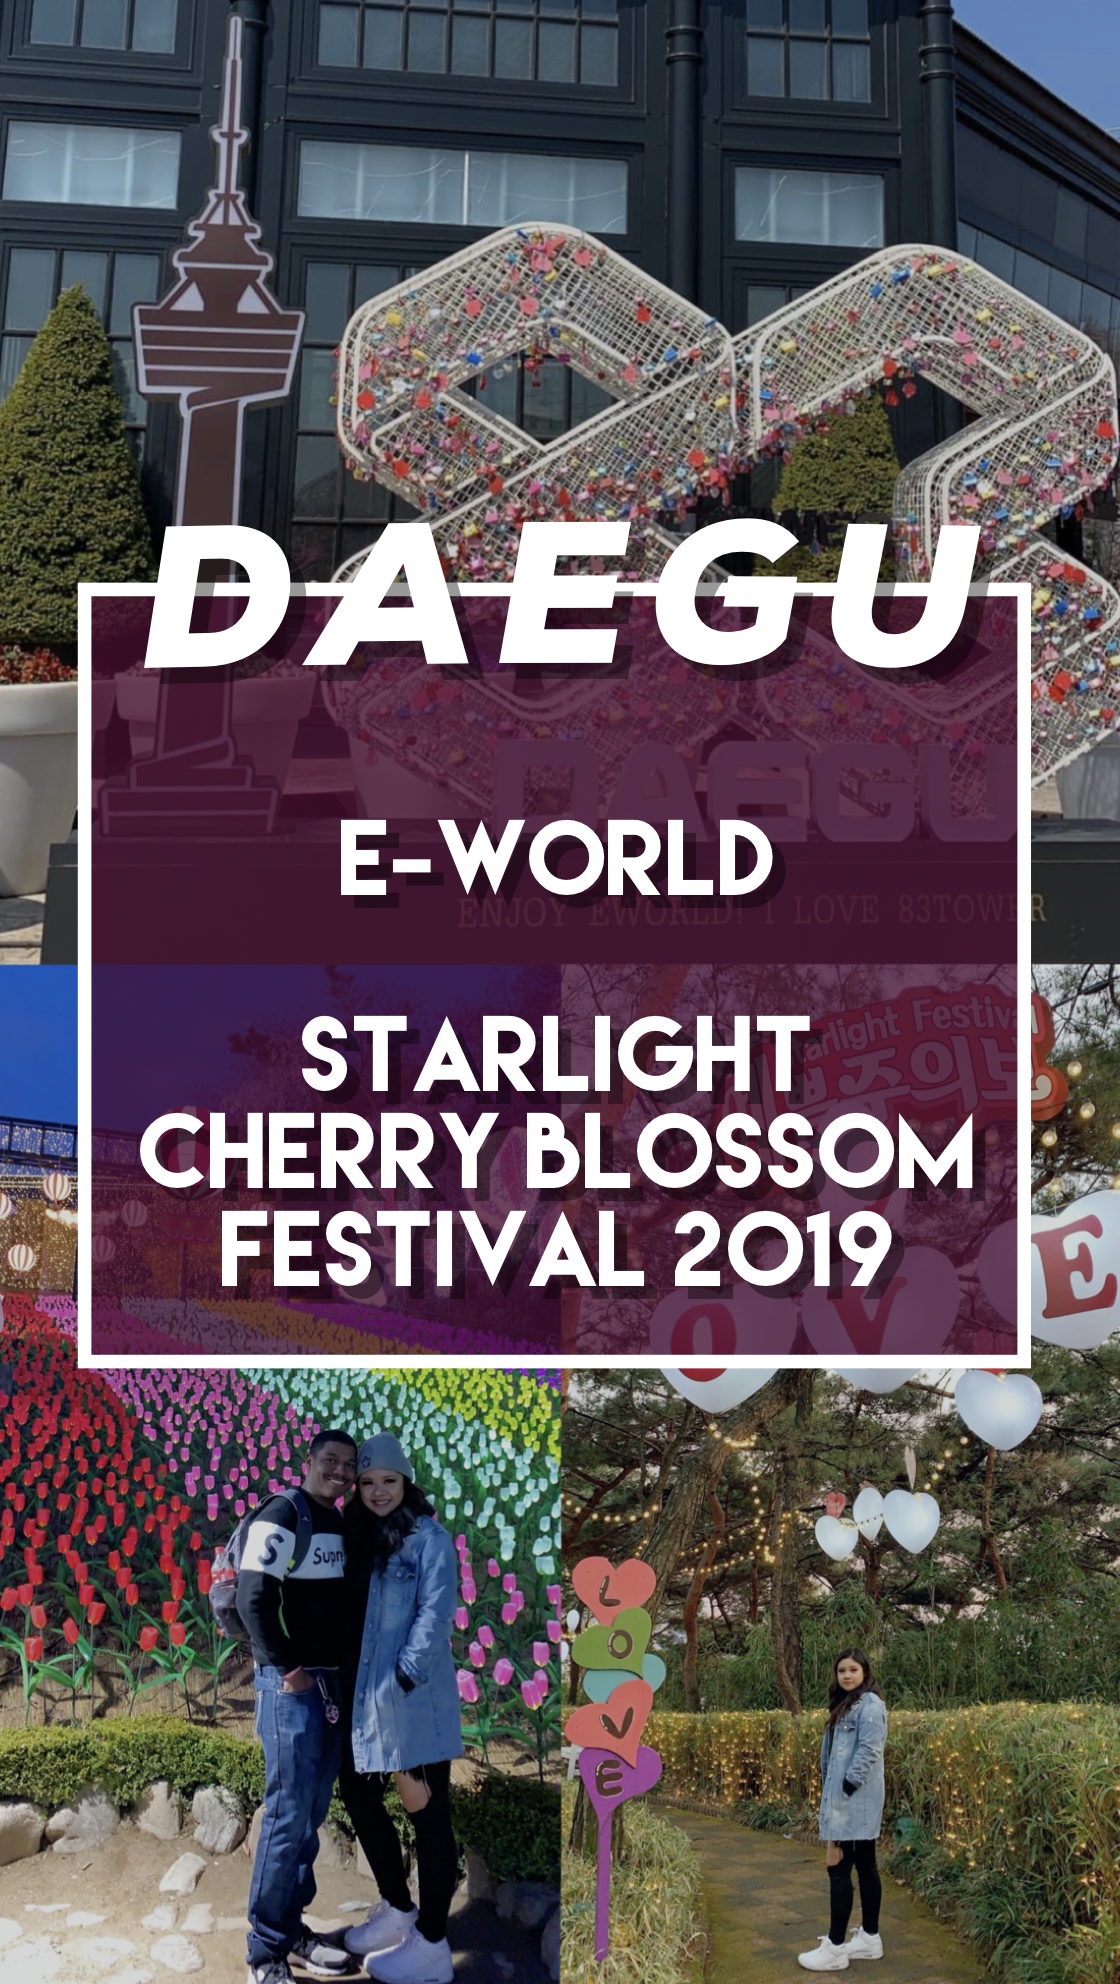 Daegu E-World Festival 2019 | Daegu, Eworld, South Korea, Travel